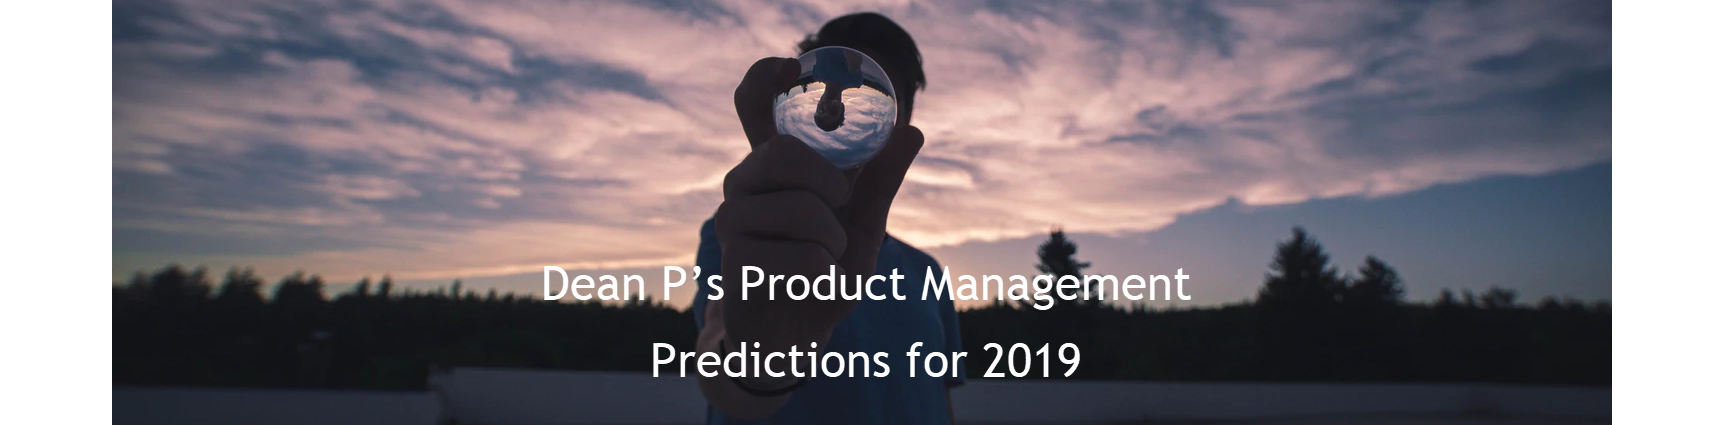 Dean P's Product Management Predictions for 2019 - Dean On